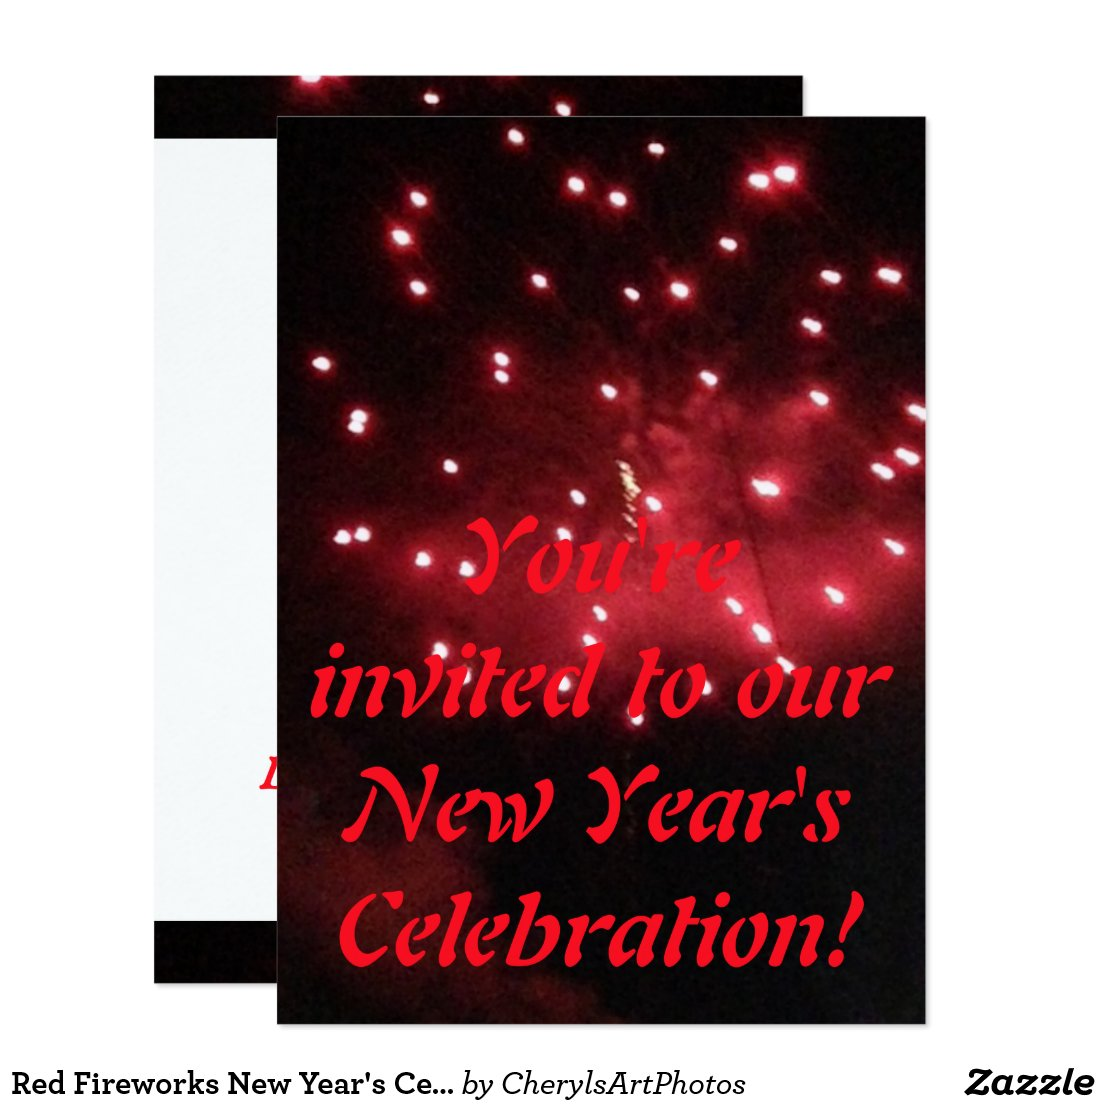 Red Fireworks New Year's Celebration Invitations